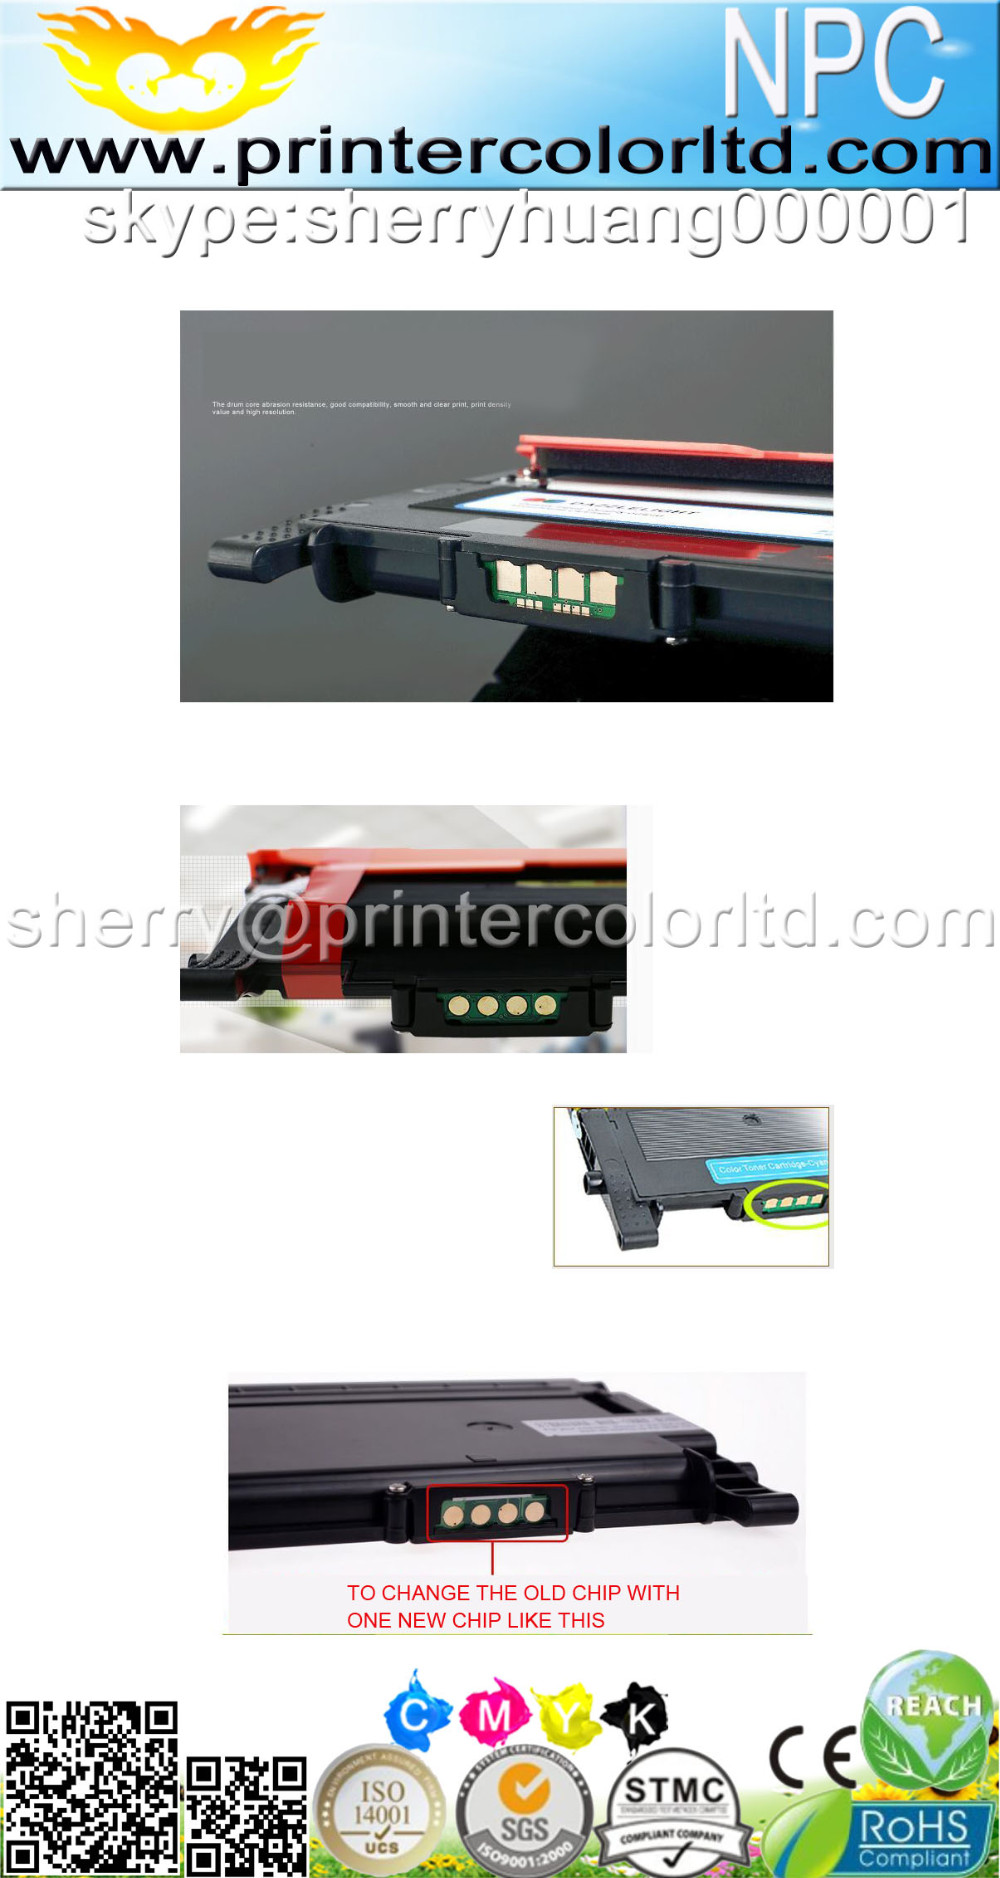 factory supply CLT-404S toner for Samsung Xpress clt-404 SL-C430/C430W/C480 cartridge reset chips